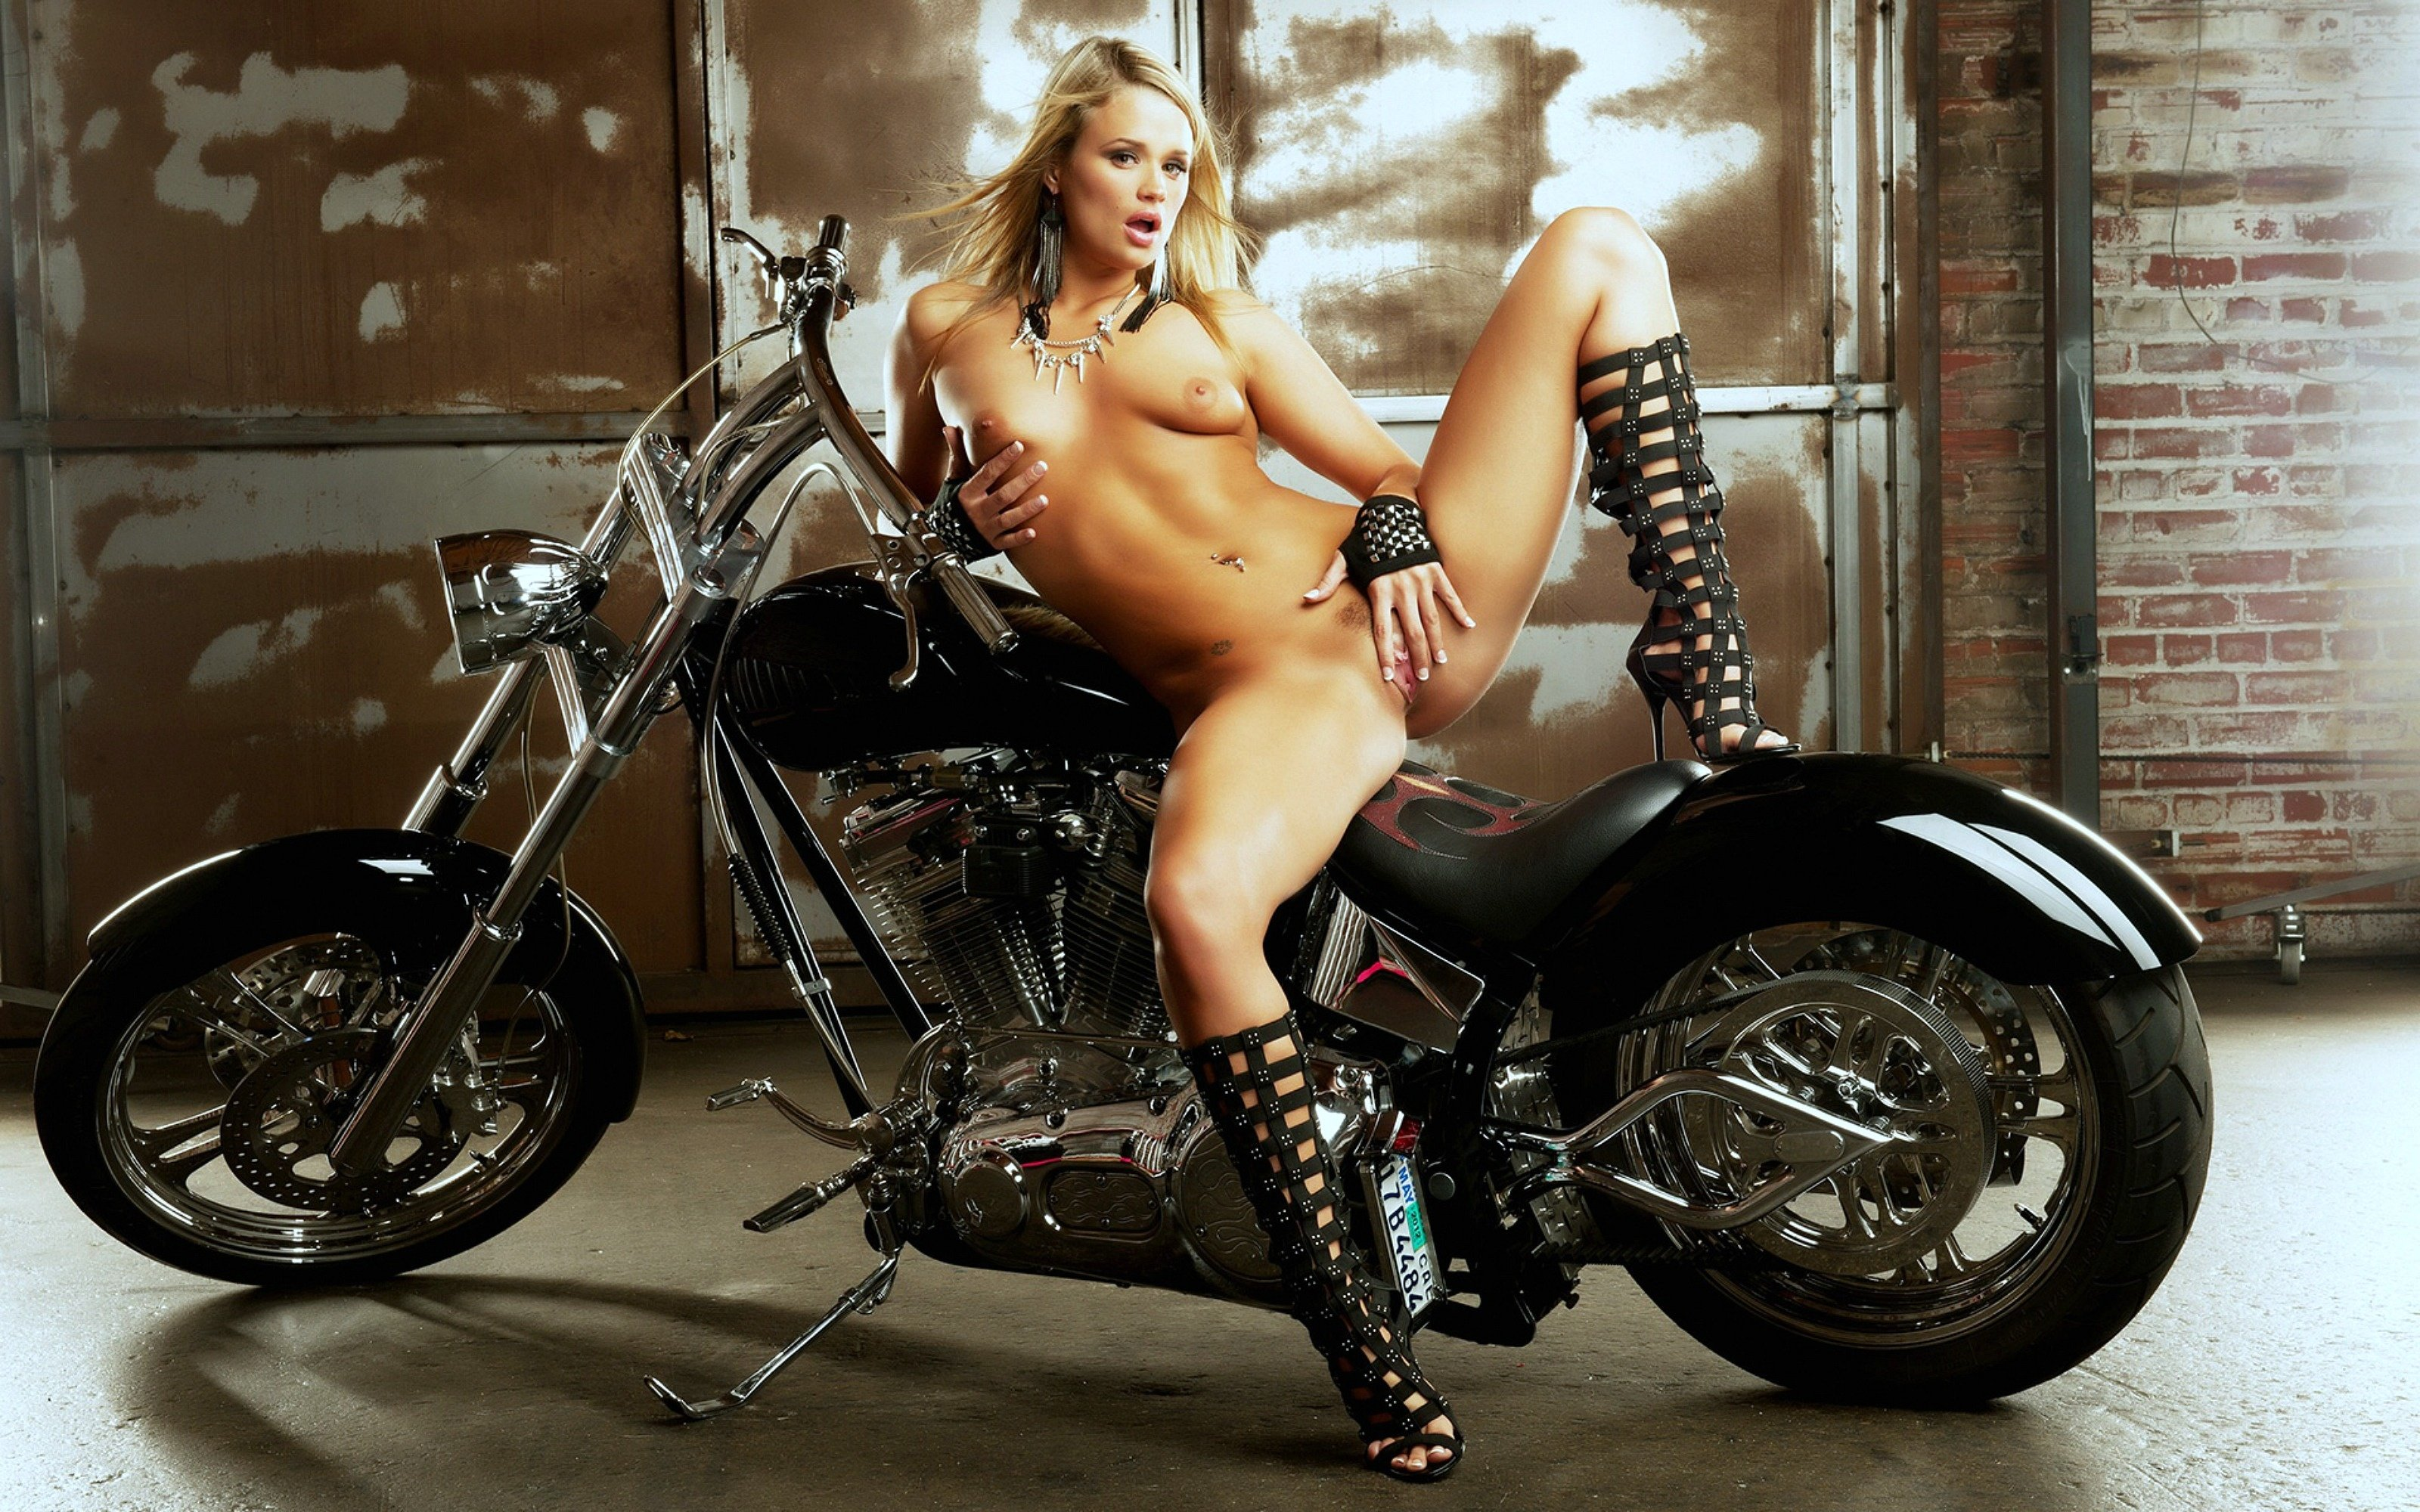 Motorcycle nude model — photo 11